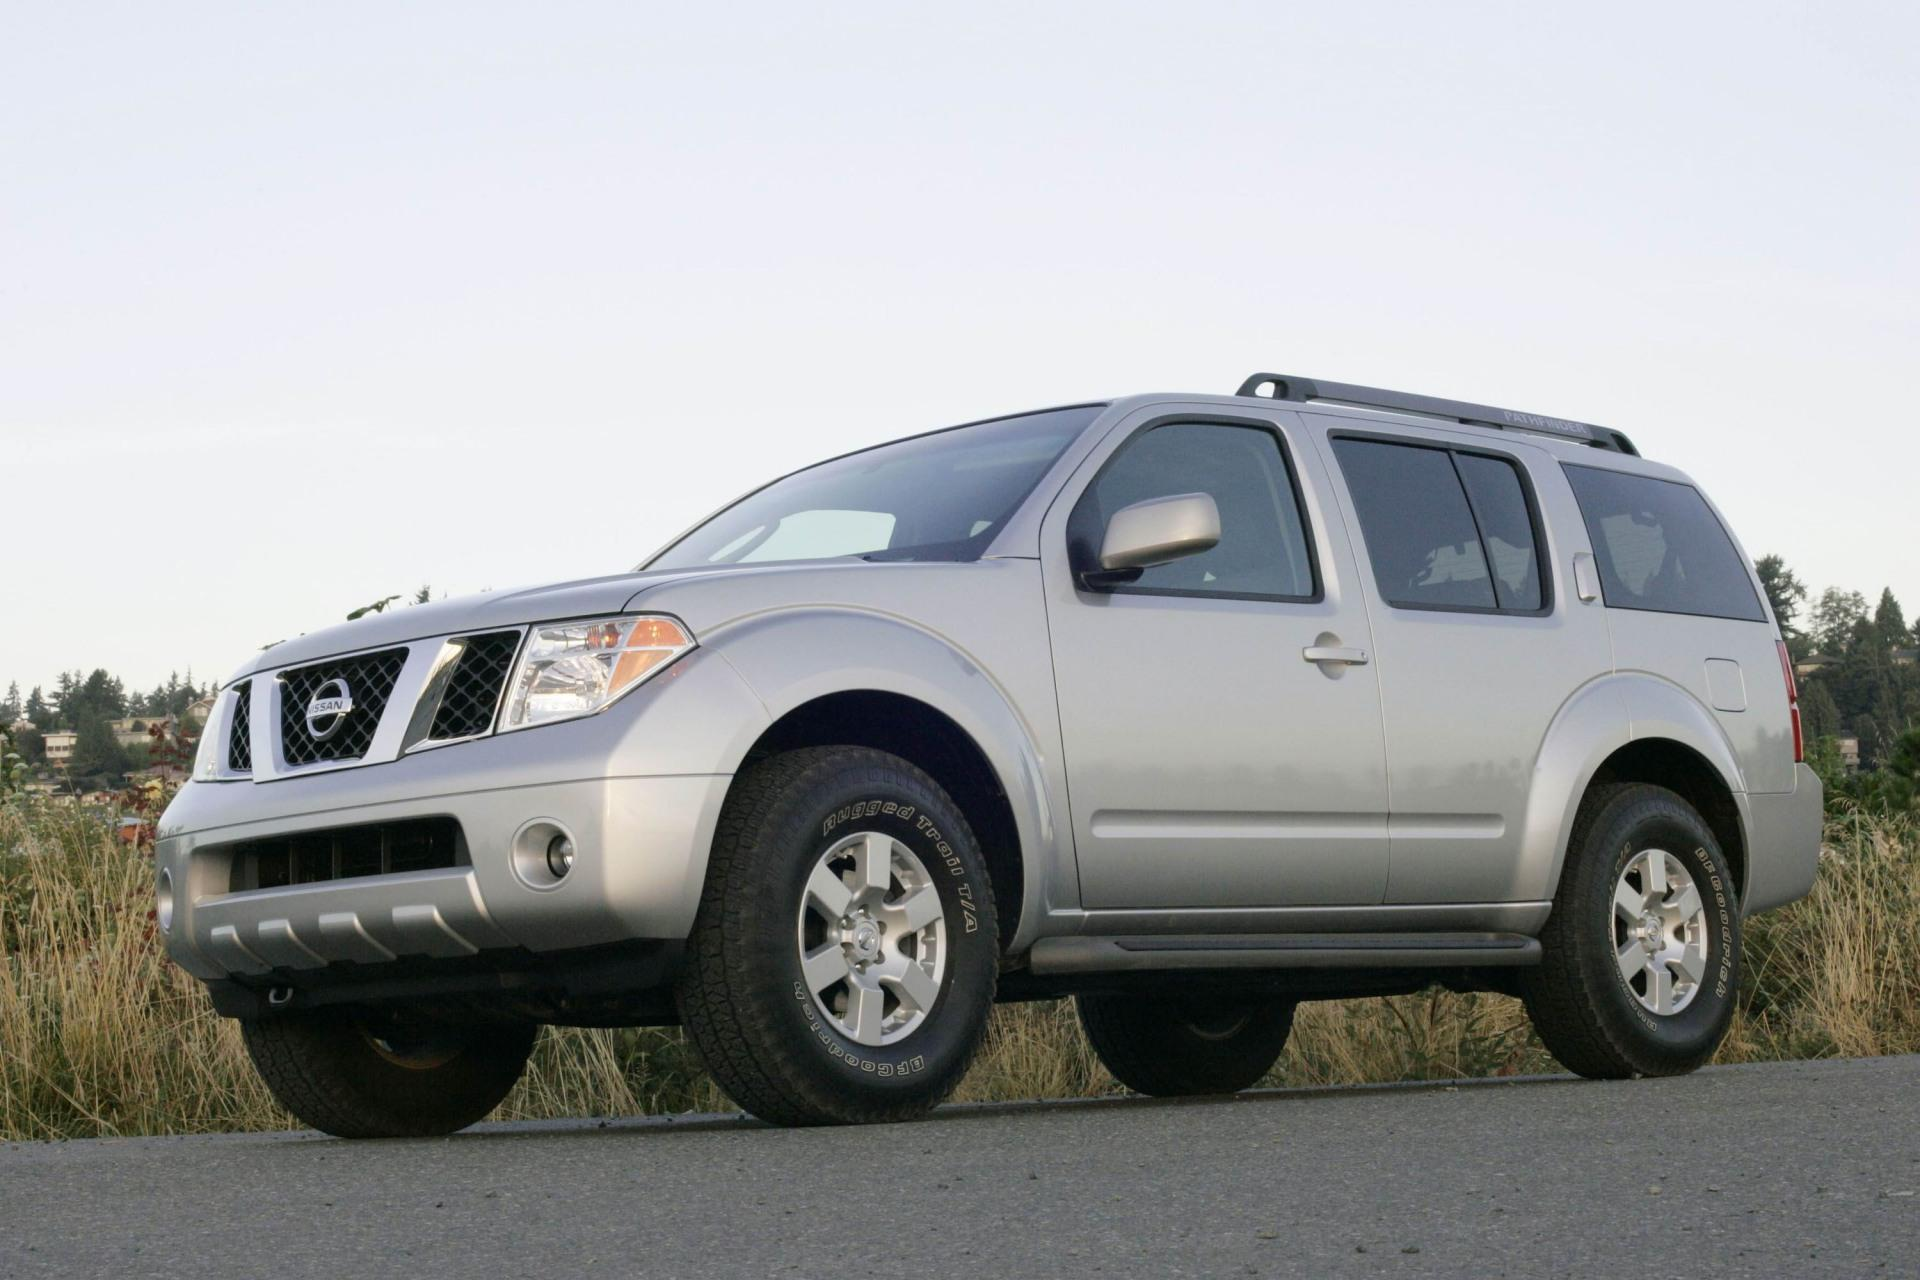 2007 Nissan Pathfinder Images Photo 2007 Nissan